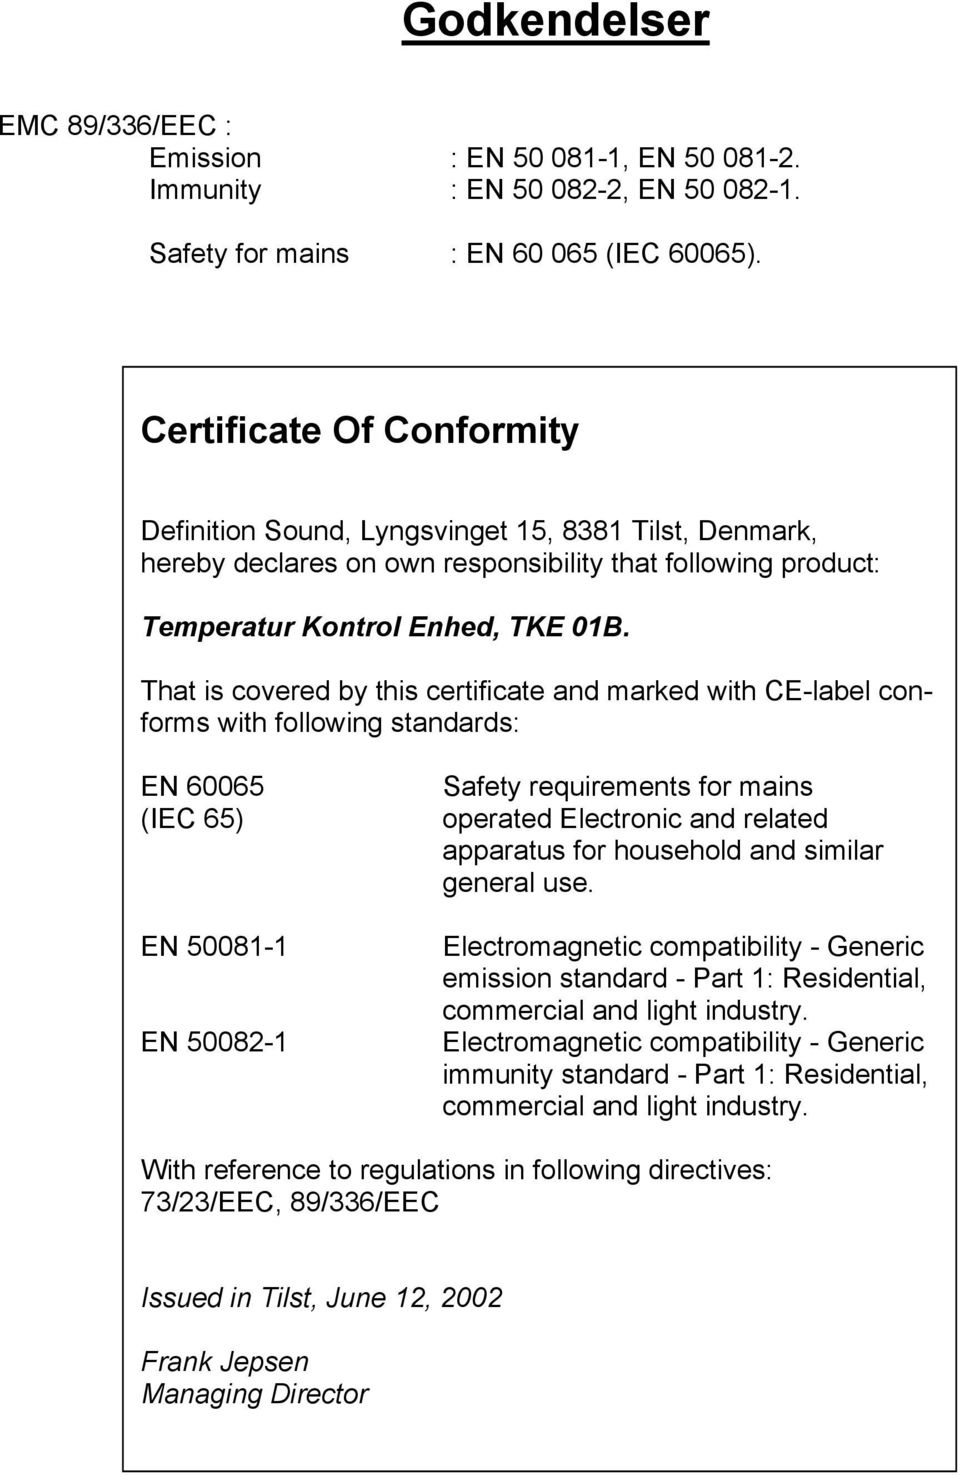 That is covered by this certificate and marked with CE-label conforms with following standards: EN 60065 (IEC 65) EN 50081-1 EN 50082-1 Safety requirements for mains operated Electronic and related